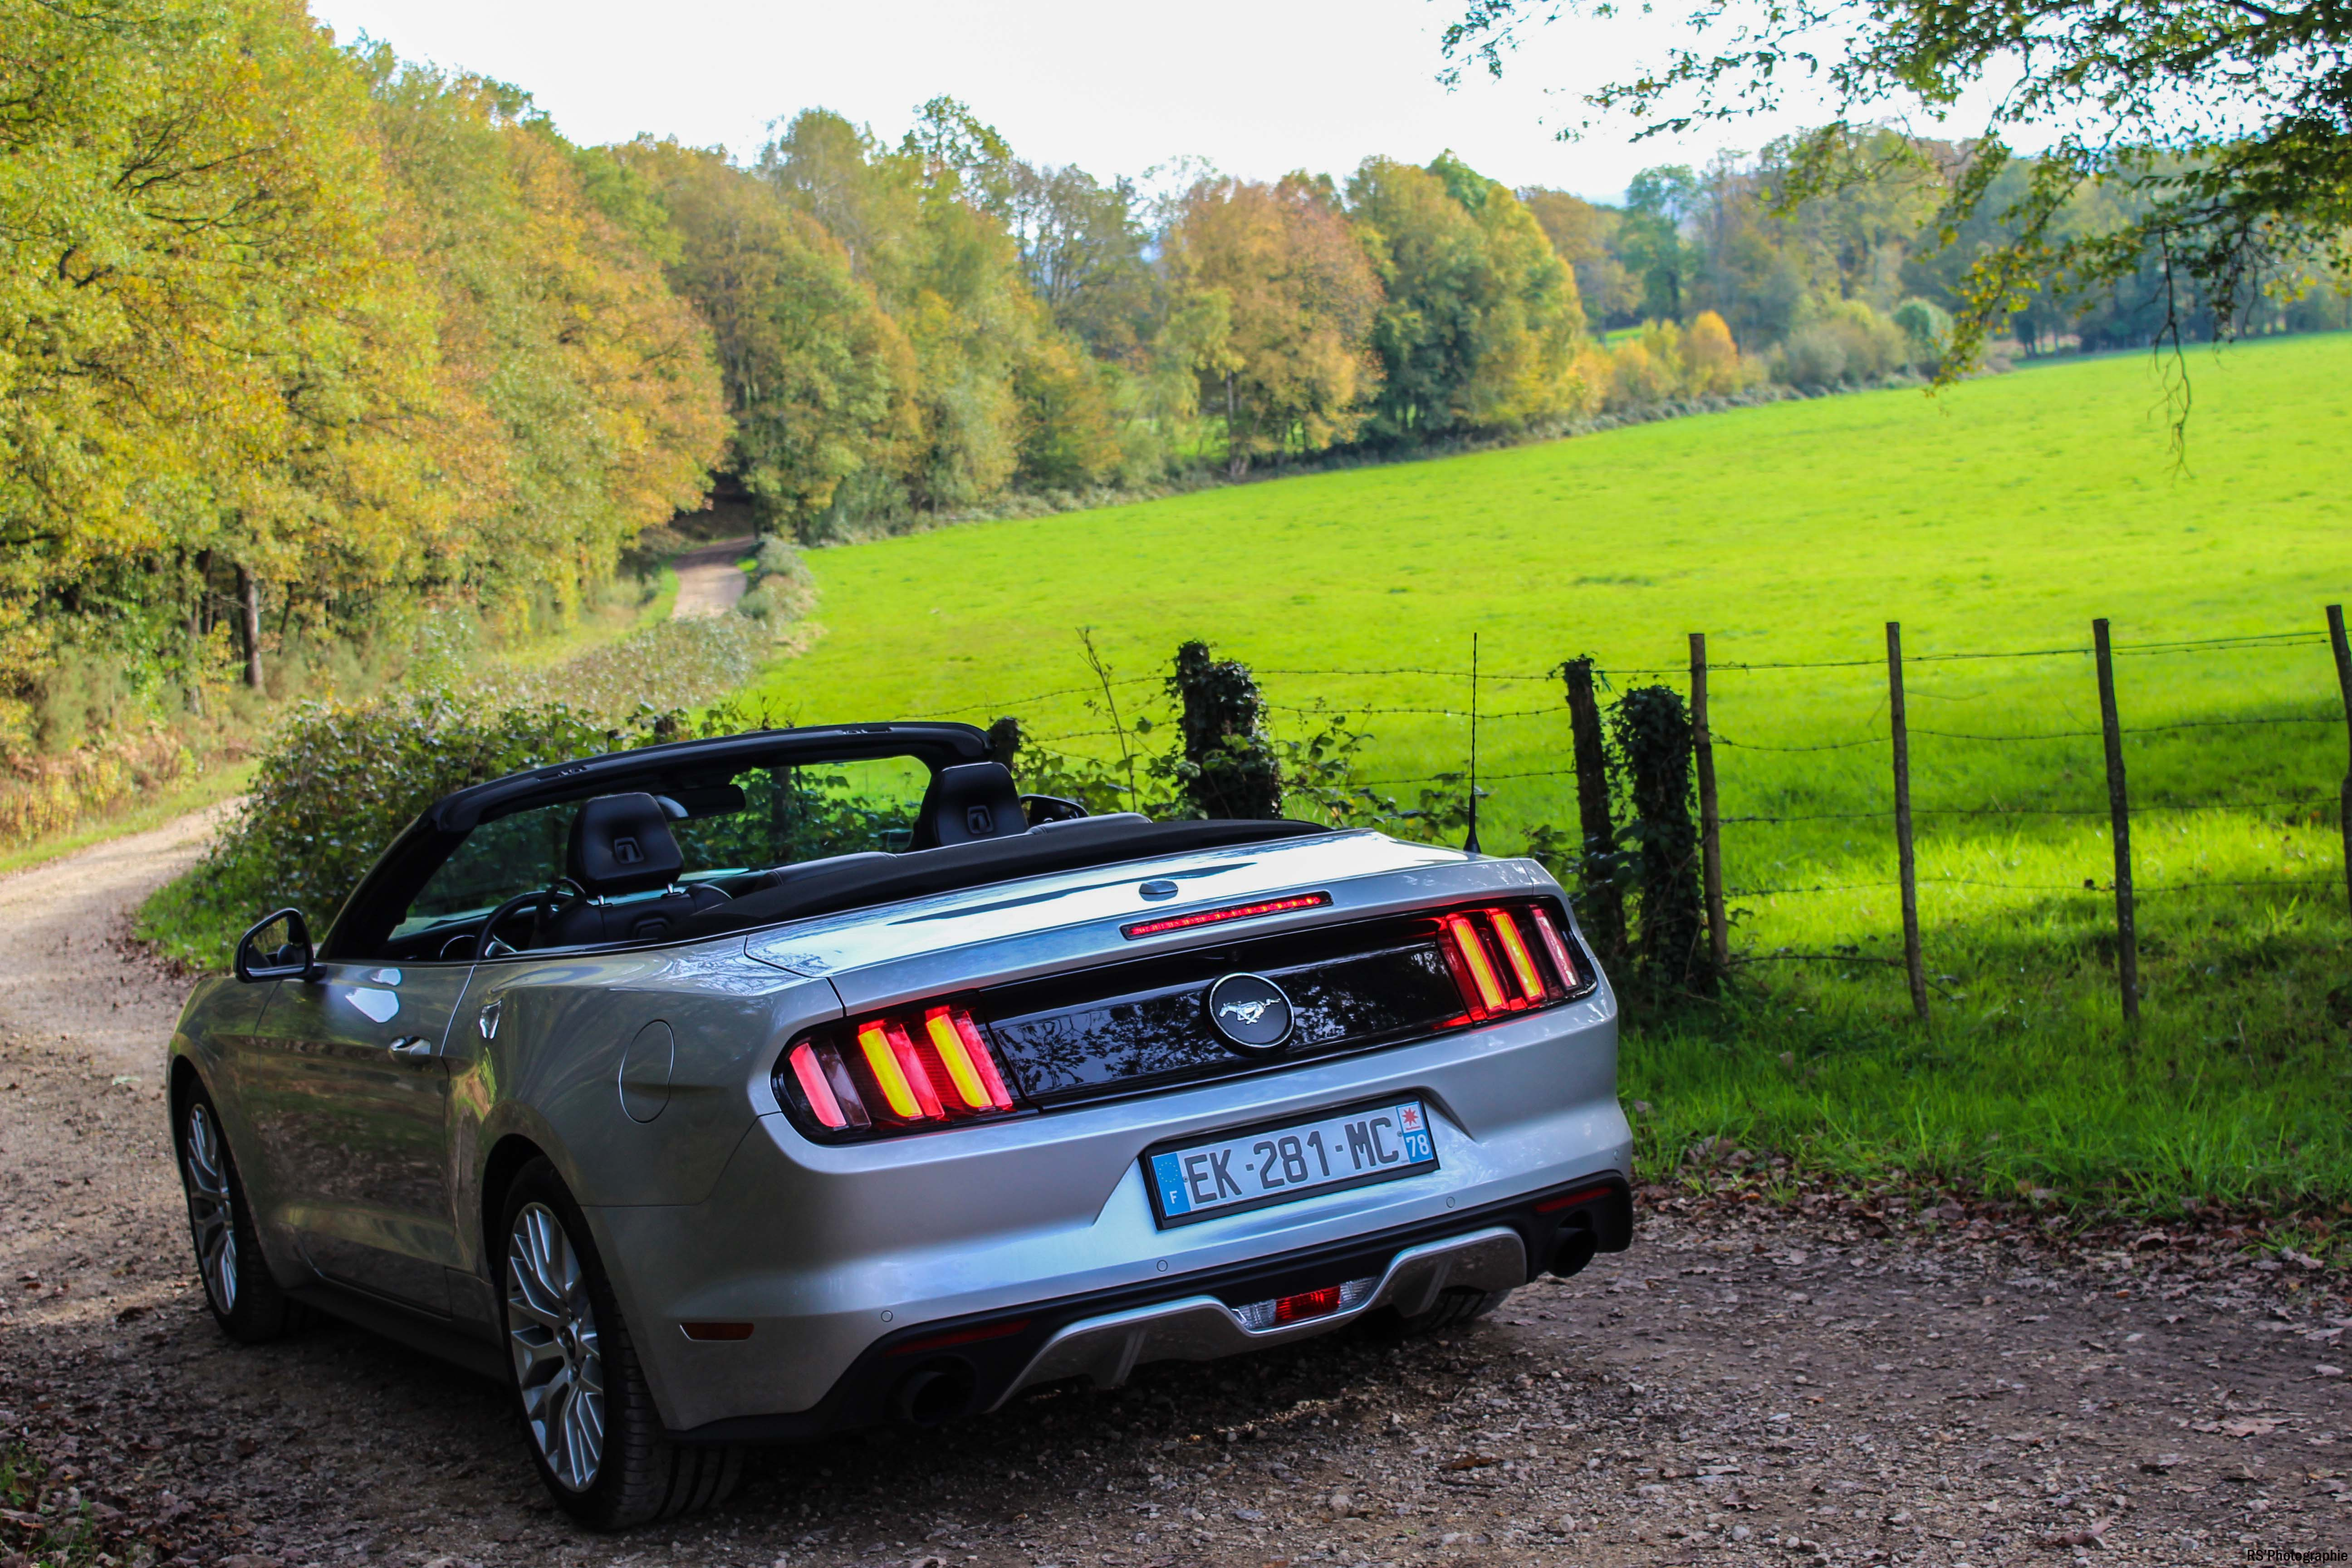 fordmustangeconvertible61-ford-mustang-convertible-ecoboost-arrière-rear-Arnaud Demasier-RSPhotographie